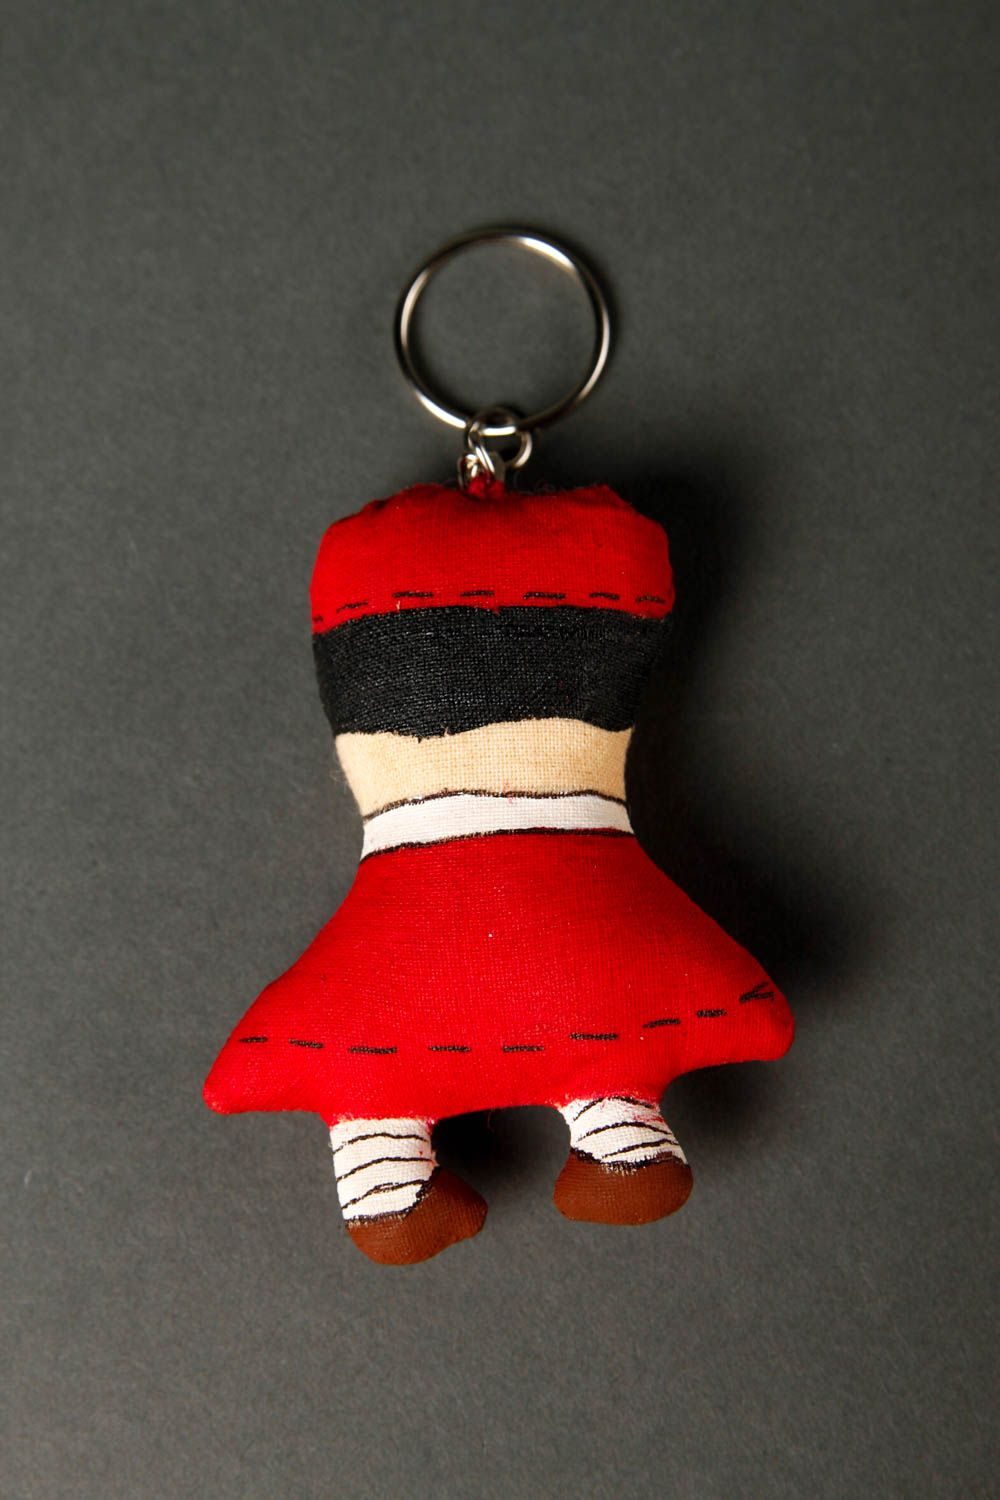 Stylish handmade soft keychain scented fabric keychain cool keyrings phone  charm